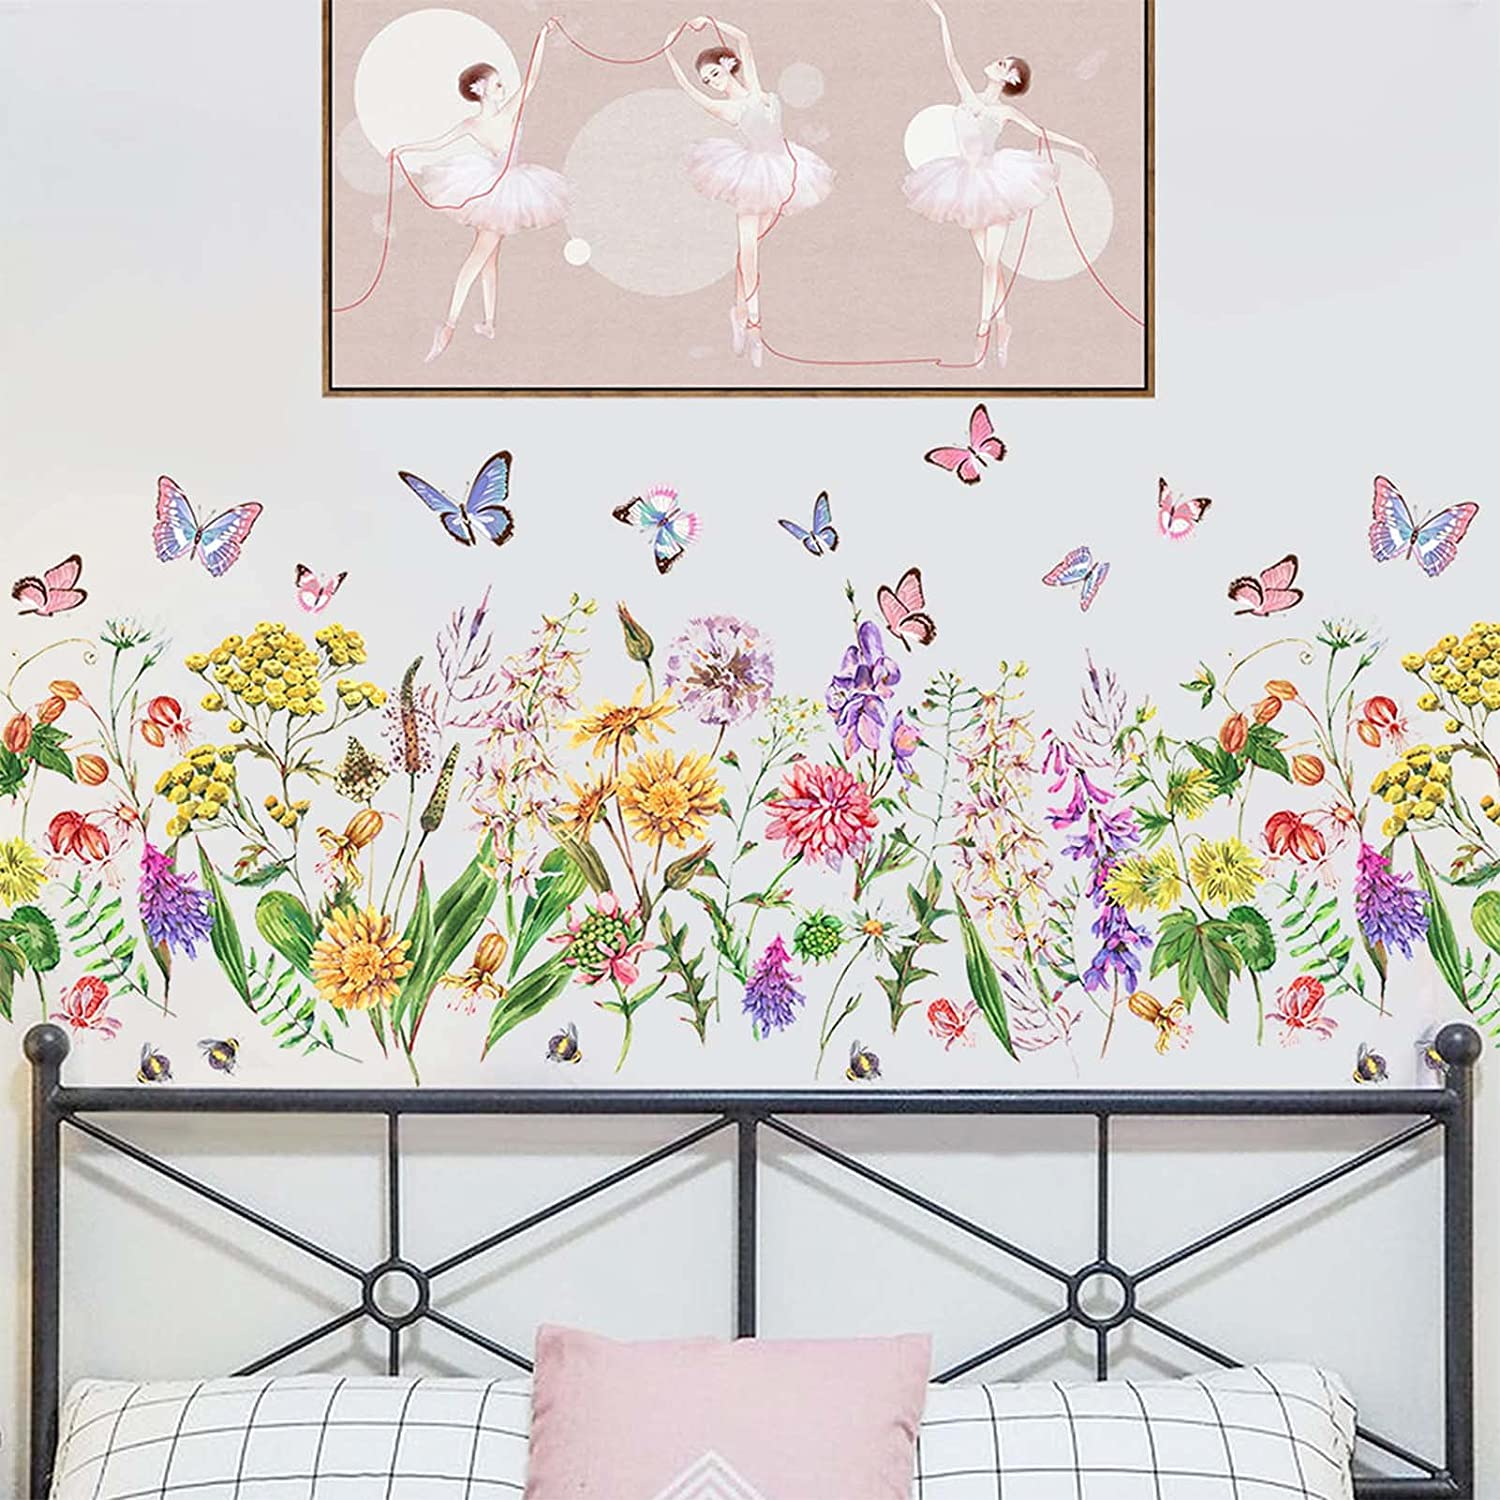 Spring Garden Flowers Wall Decals Colorful Butterflies Bees Peel and Stick Wall Sticker, SMFANLIN Floral Vines Wall Murals Wallpaper Decor for Kids Nursery Bedroom Bathroom Kitchen Home Decoration